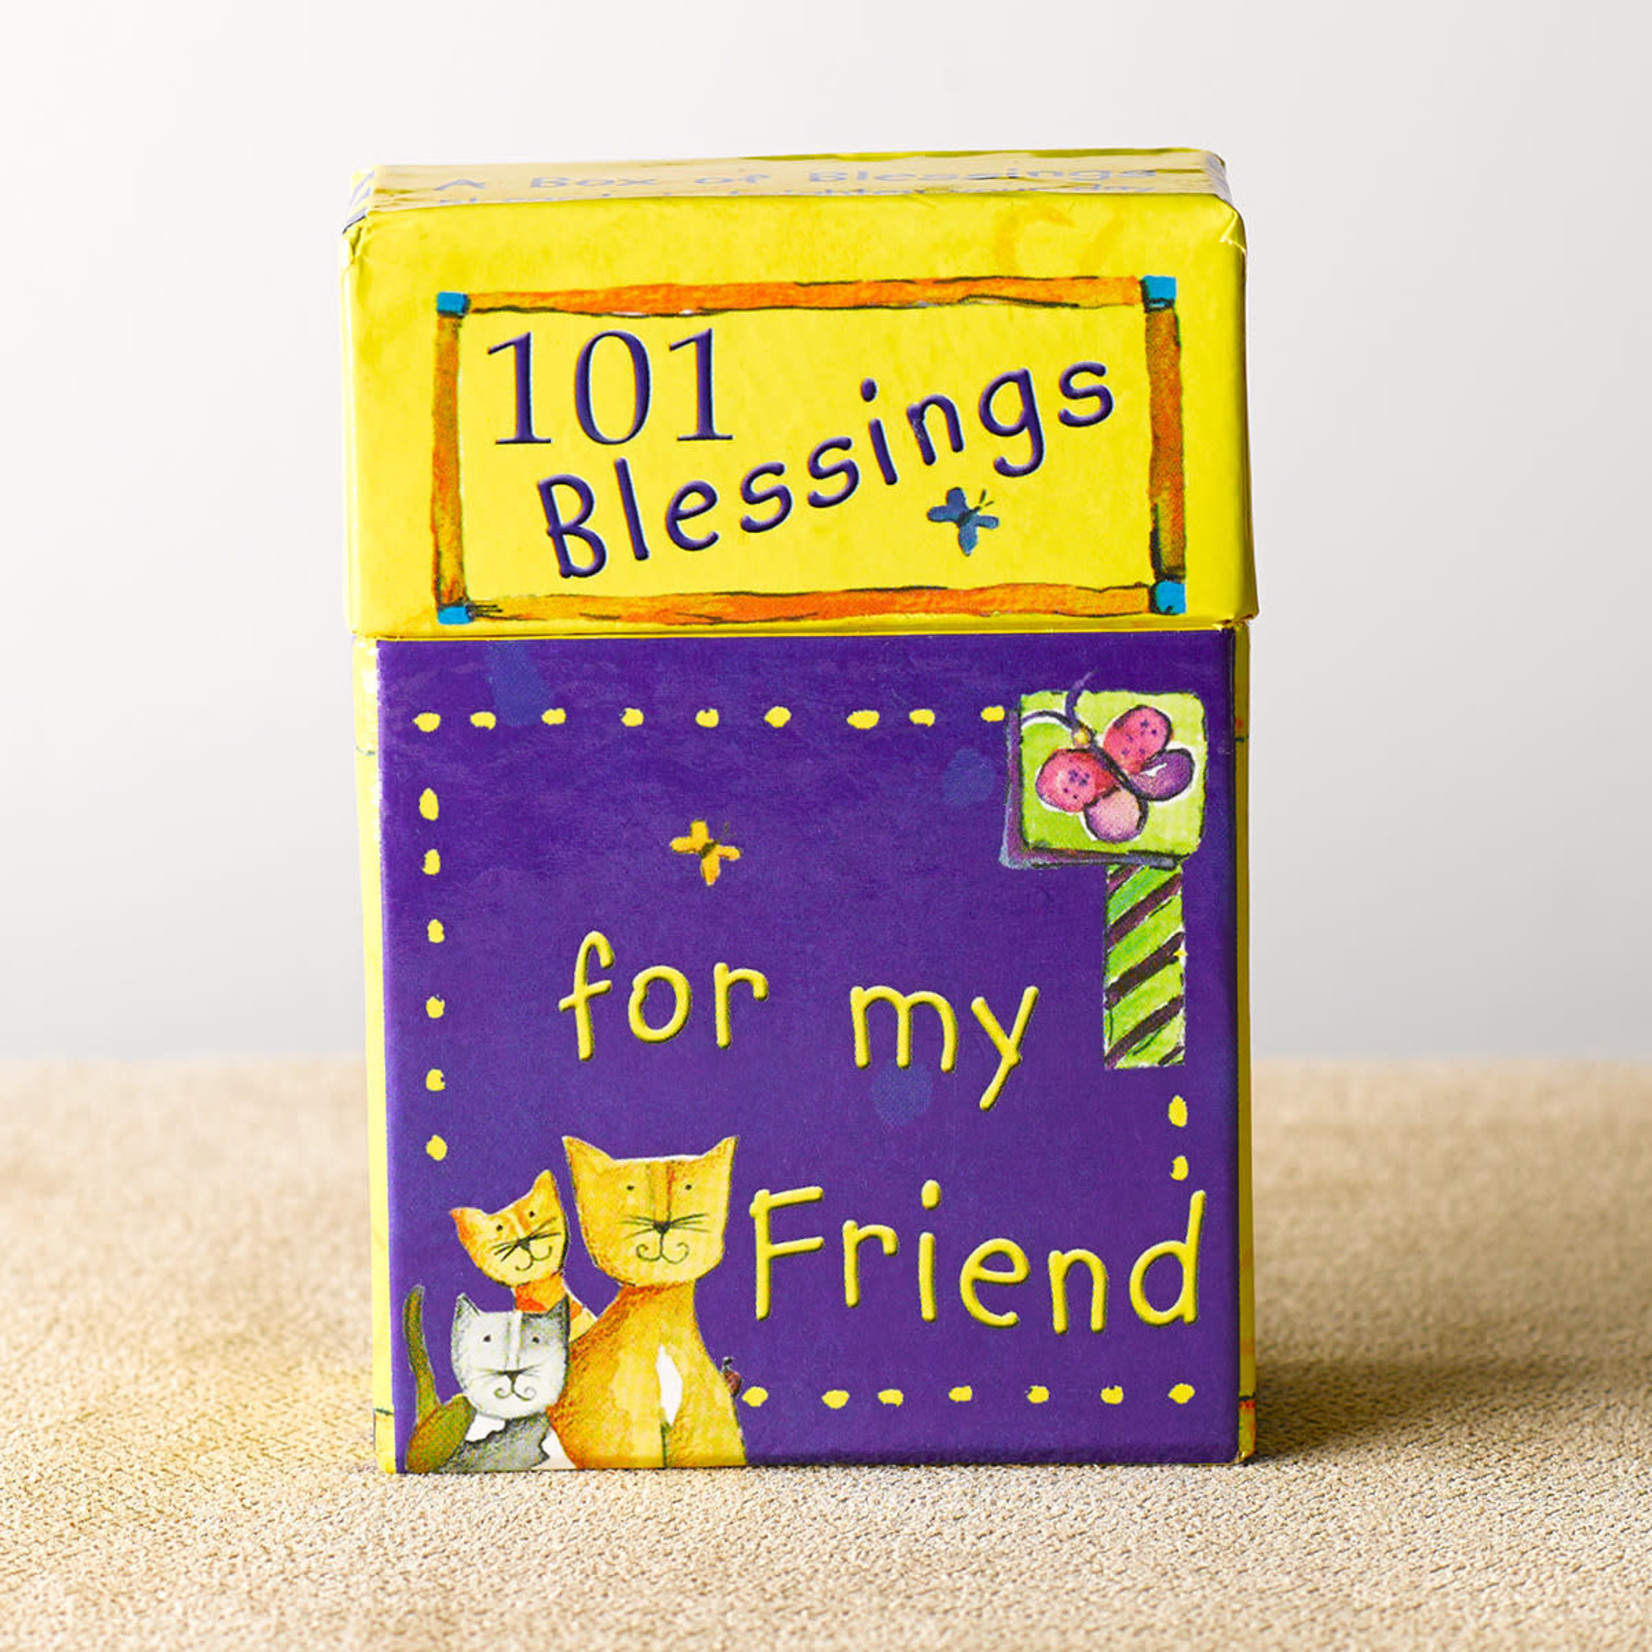 Christian Art Gifts 101 Blessings for My Friend Box of Blessings